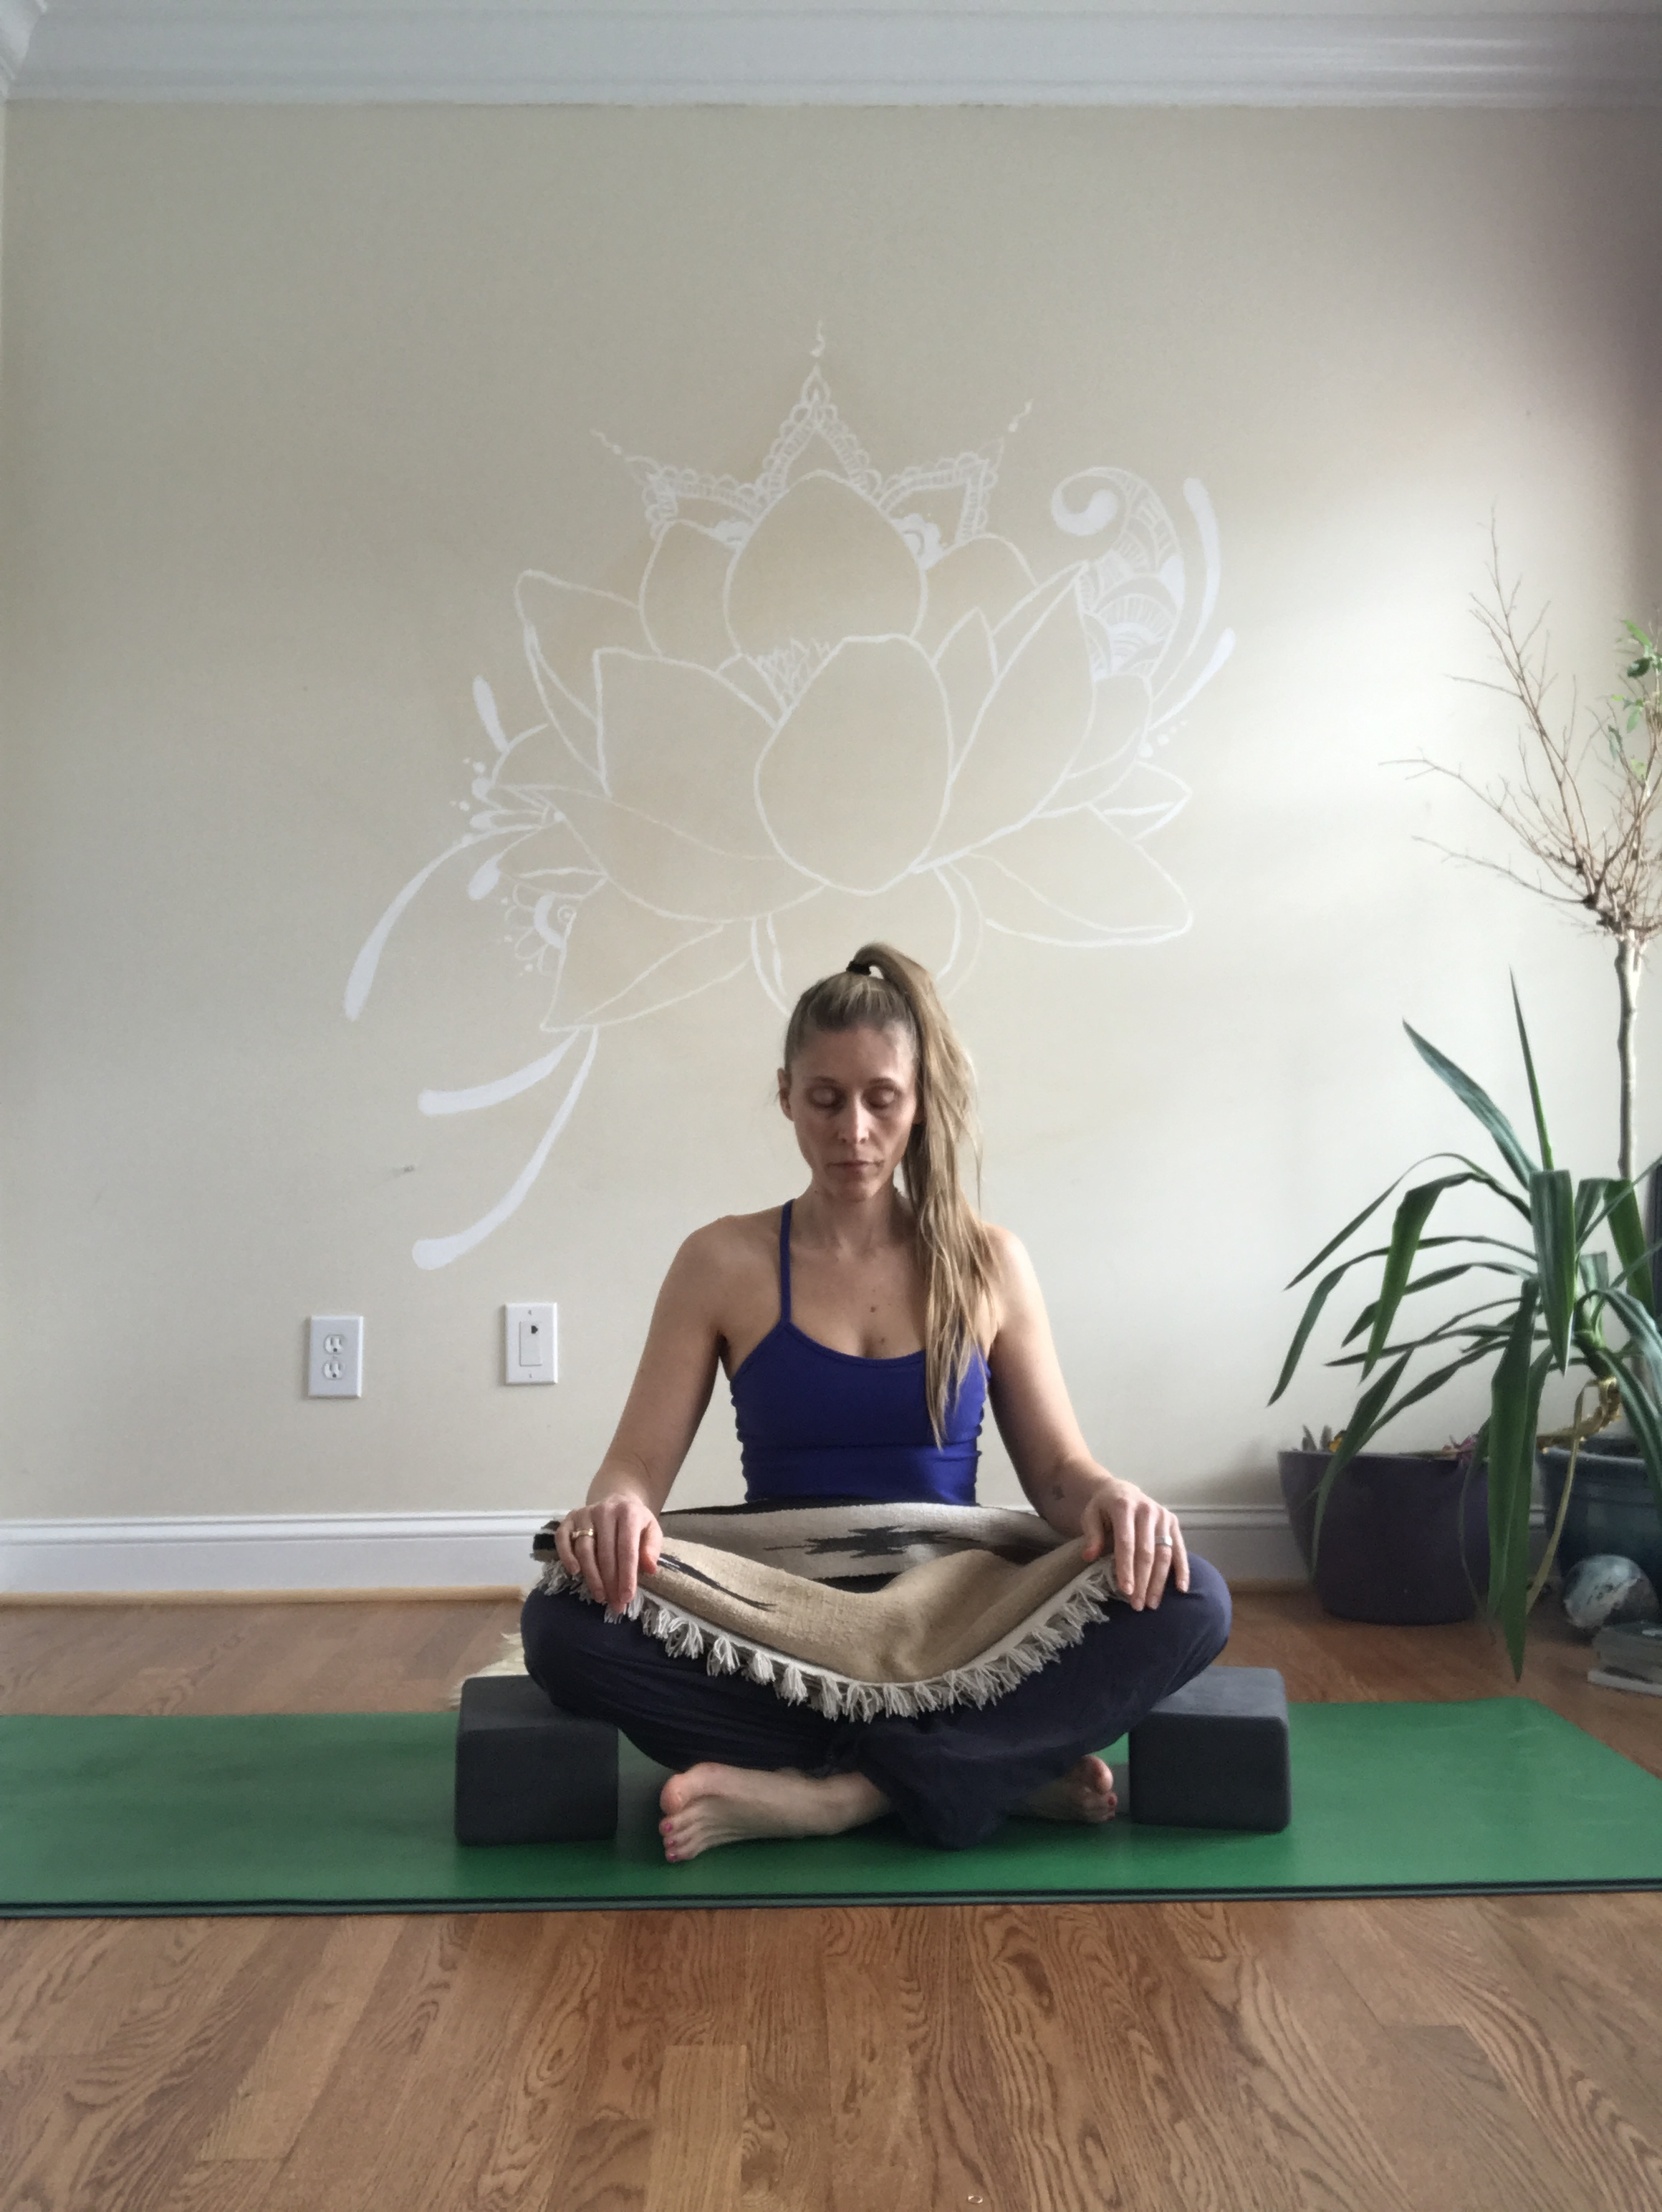 Simple Cross Legged - Sit in a comfortable cross-legged position(or bring the soles of your feet together in front of you). Place a blanket over your lap and a block beneath each knee. You could take a moment to rub your feet or simply enjoy a few quiet breaths here.